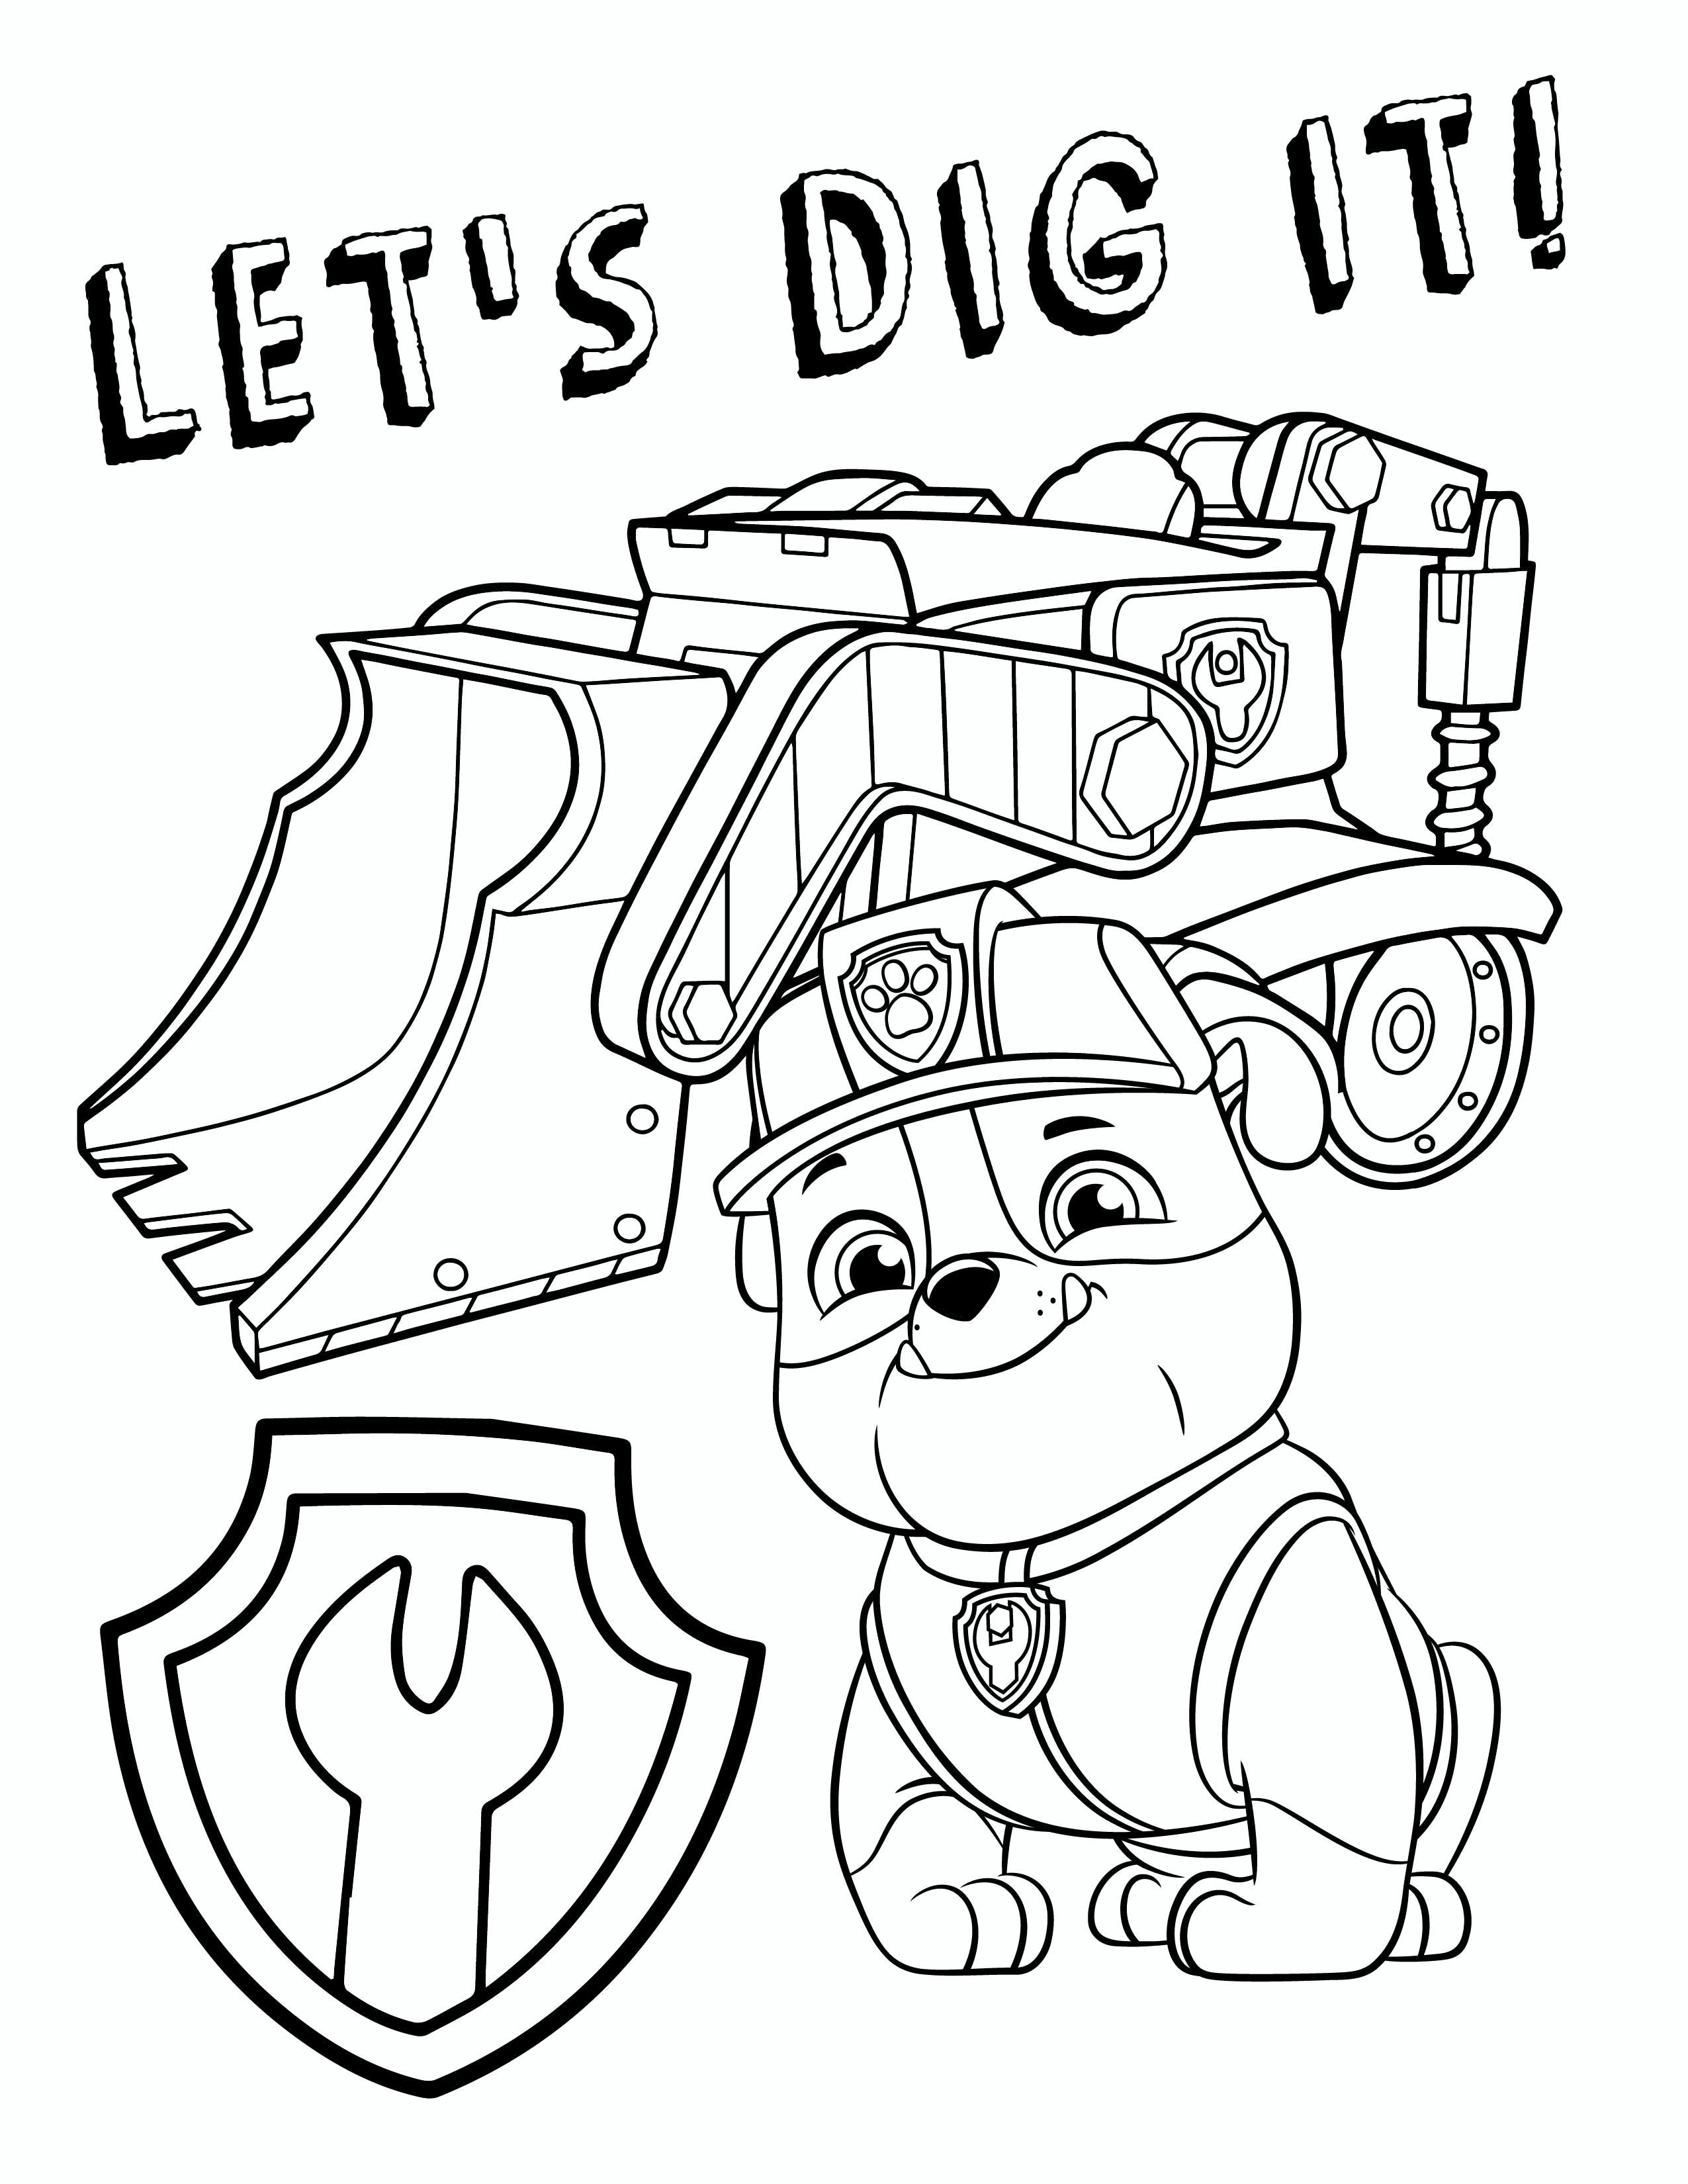 Coloring Pages : Chase Paw Patrol Coloring Page Sheet New Free Pages - Free Printable Paw Patrol Coloring Pages